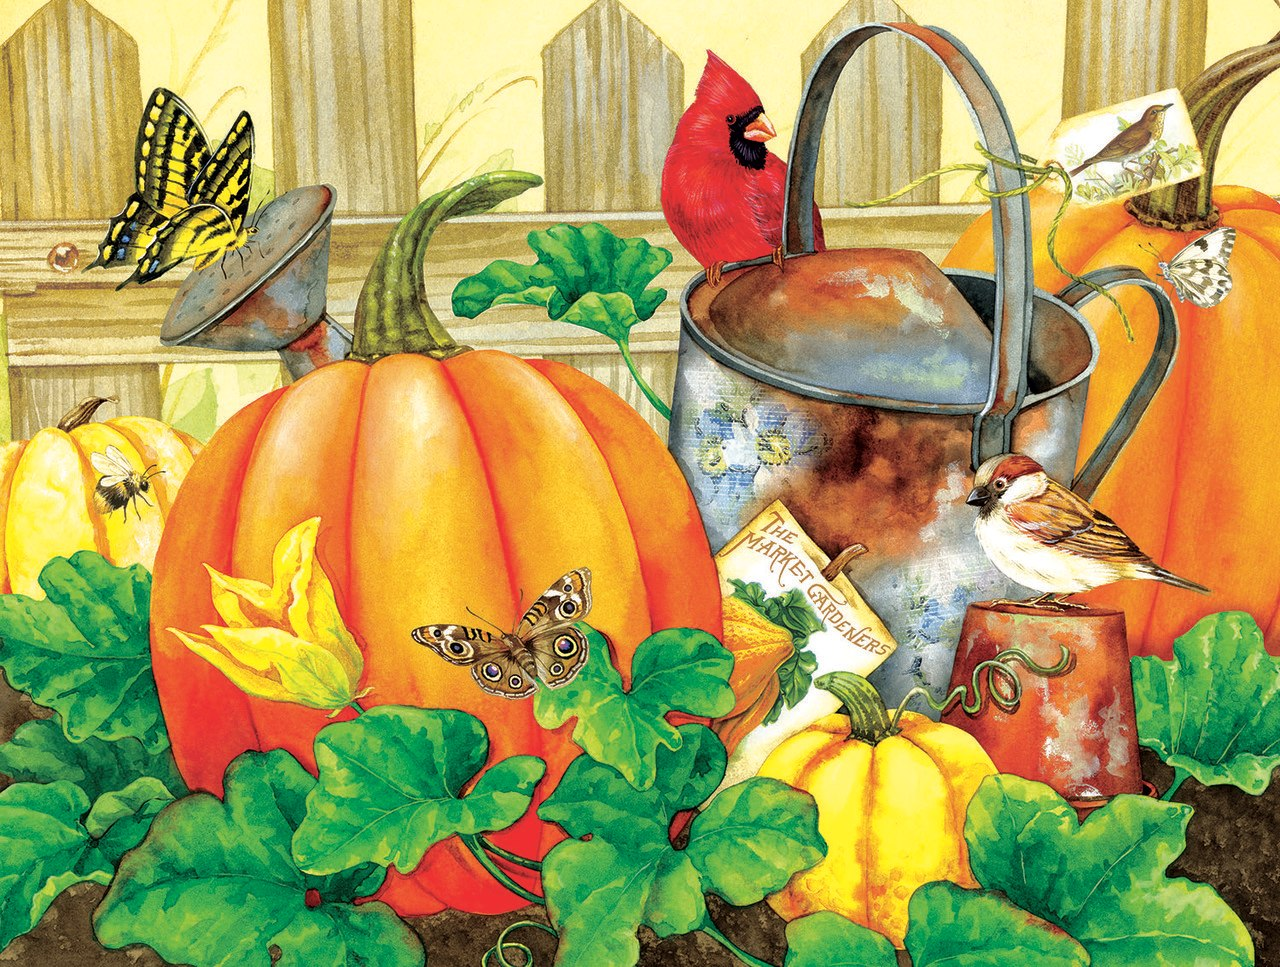 October Garden - 500pc Jigsaw Puzzle by Sunsout  			  					NEW